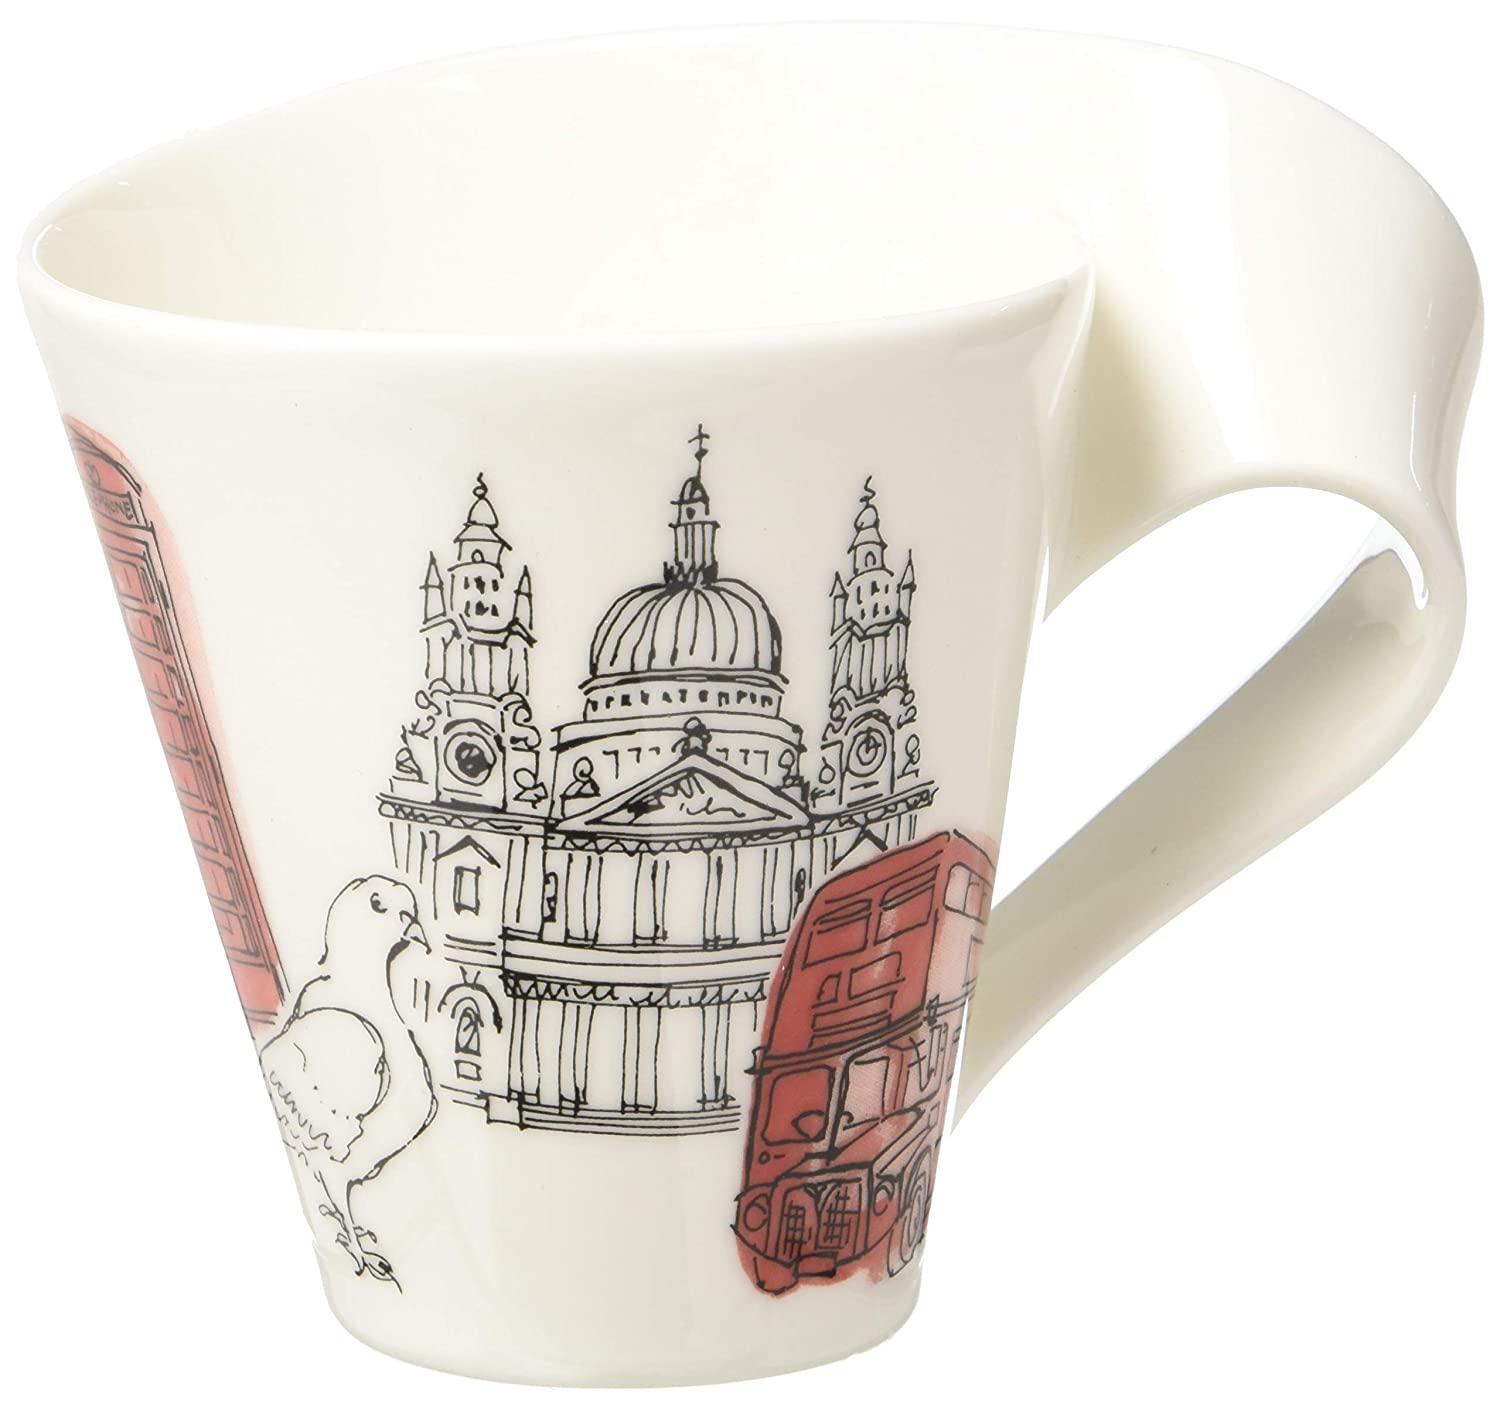 New Wave Caffé Cities of the World Mug London By Villeroy & Boch - Premium Porcelain - Made in Germany - Dishwasher and Microwave Safe - Gift Boxed - 11.75 Ounce Capacity